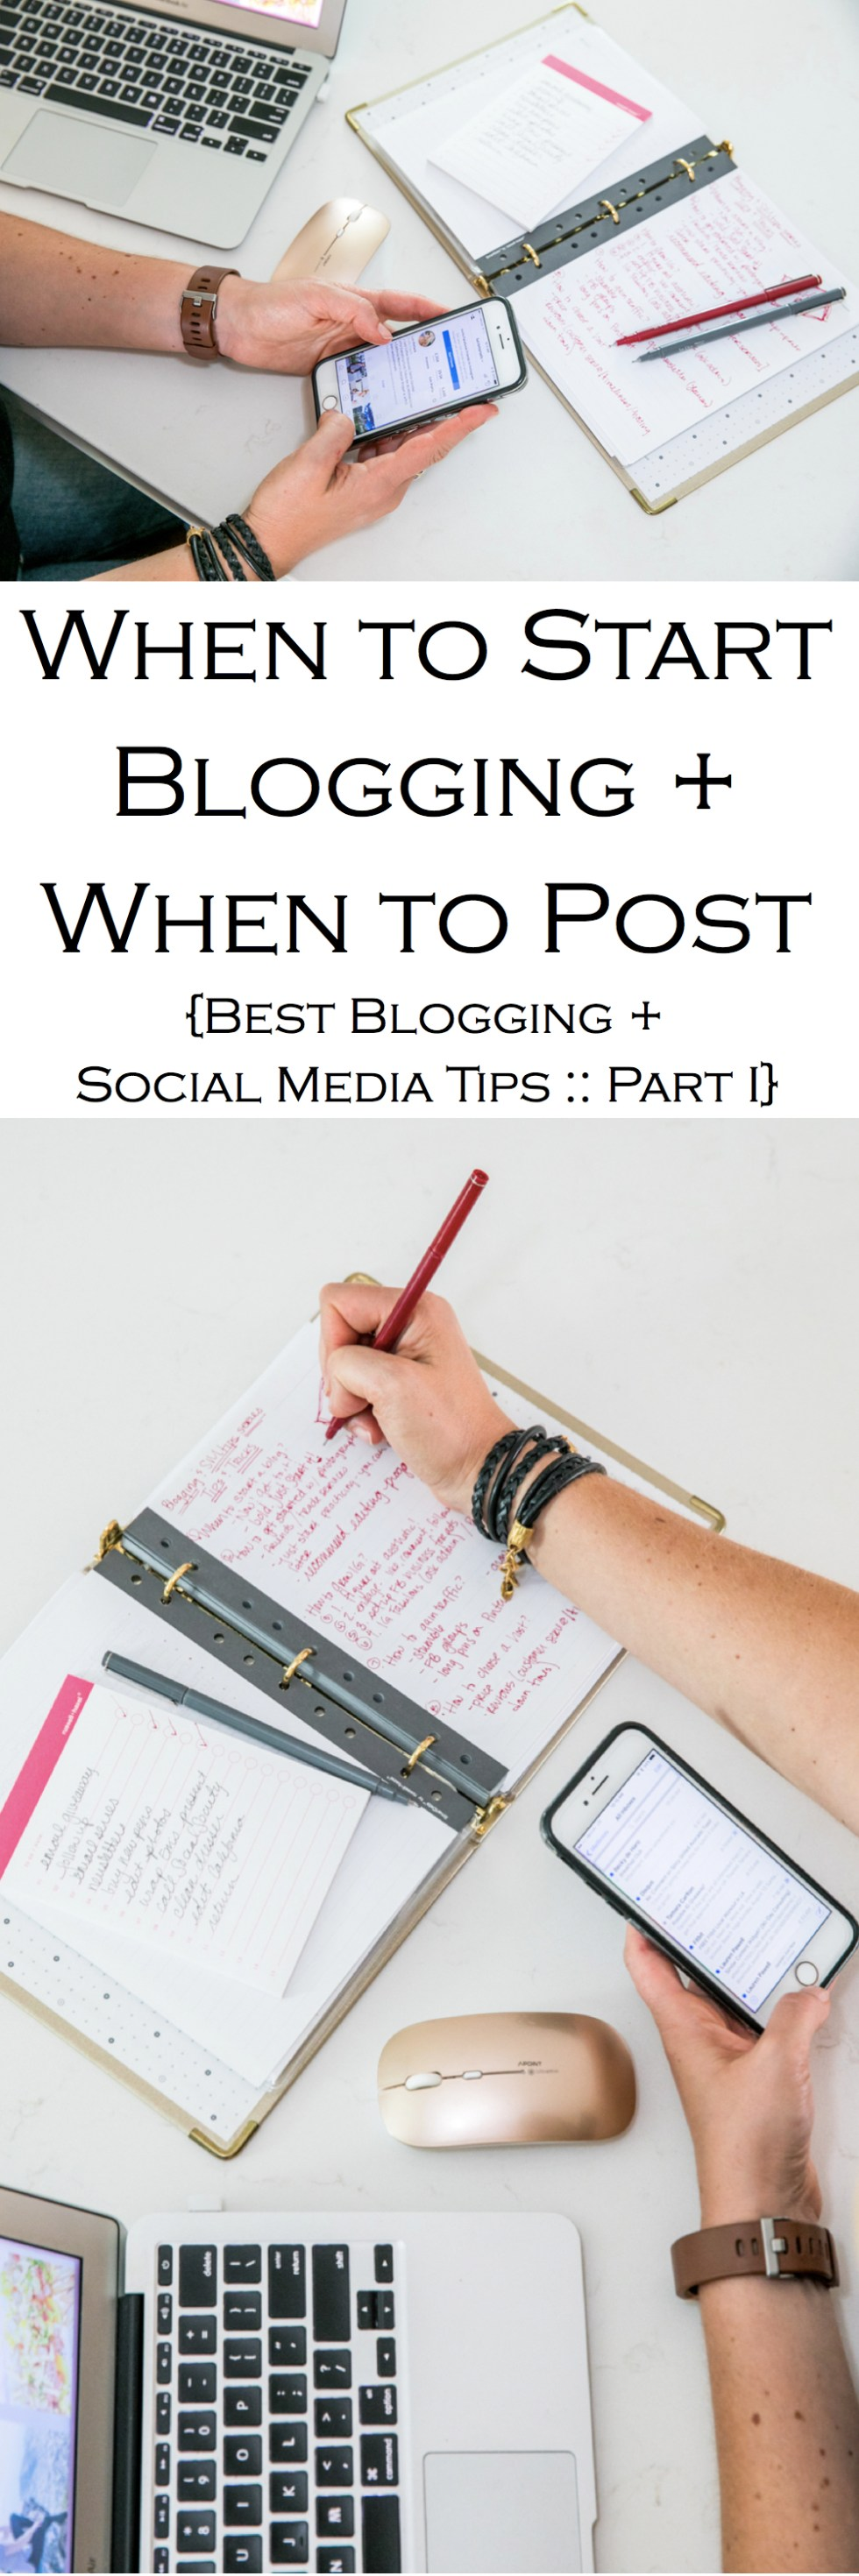 "Want to start a blog but don't know when? Part one of this ""Best Blogging + Social Media Tips Series"" answers when you should start a blog and how often you should post!"